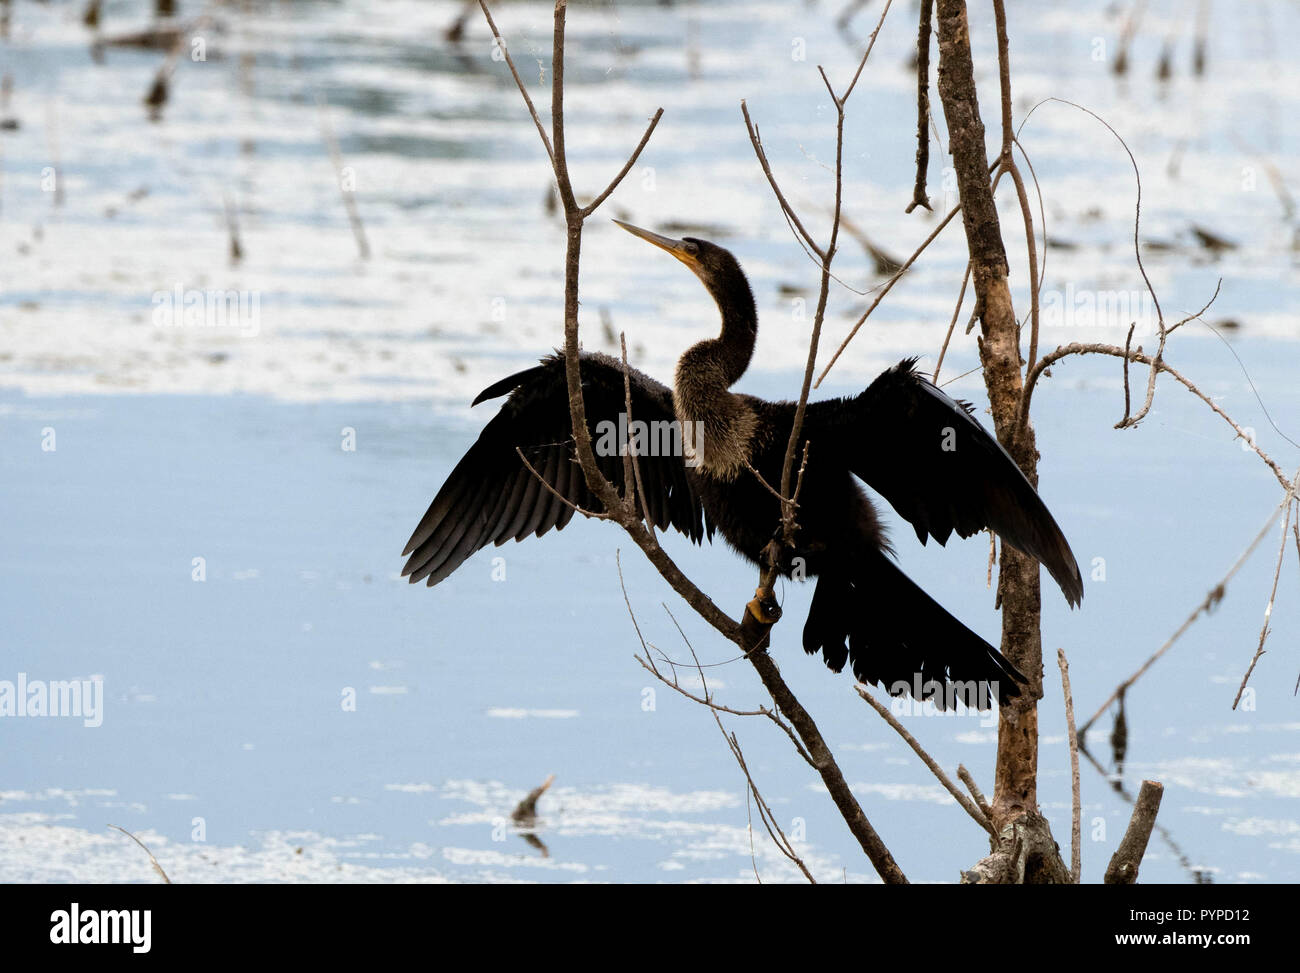 Anhinga in characteristic feather drying pose at the Savannah National Wildlife Refuge in South Carolina USA - Stock Image